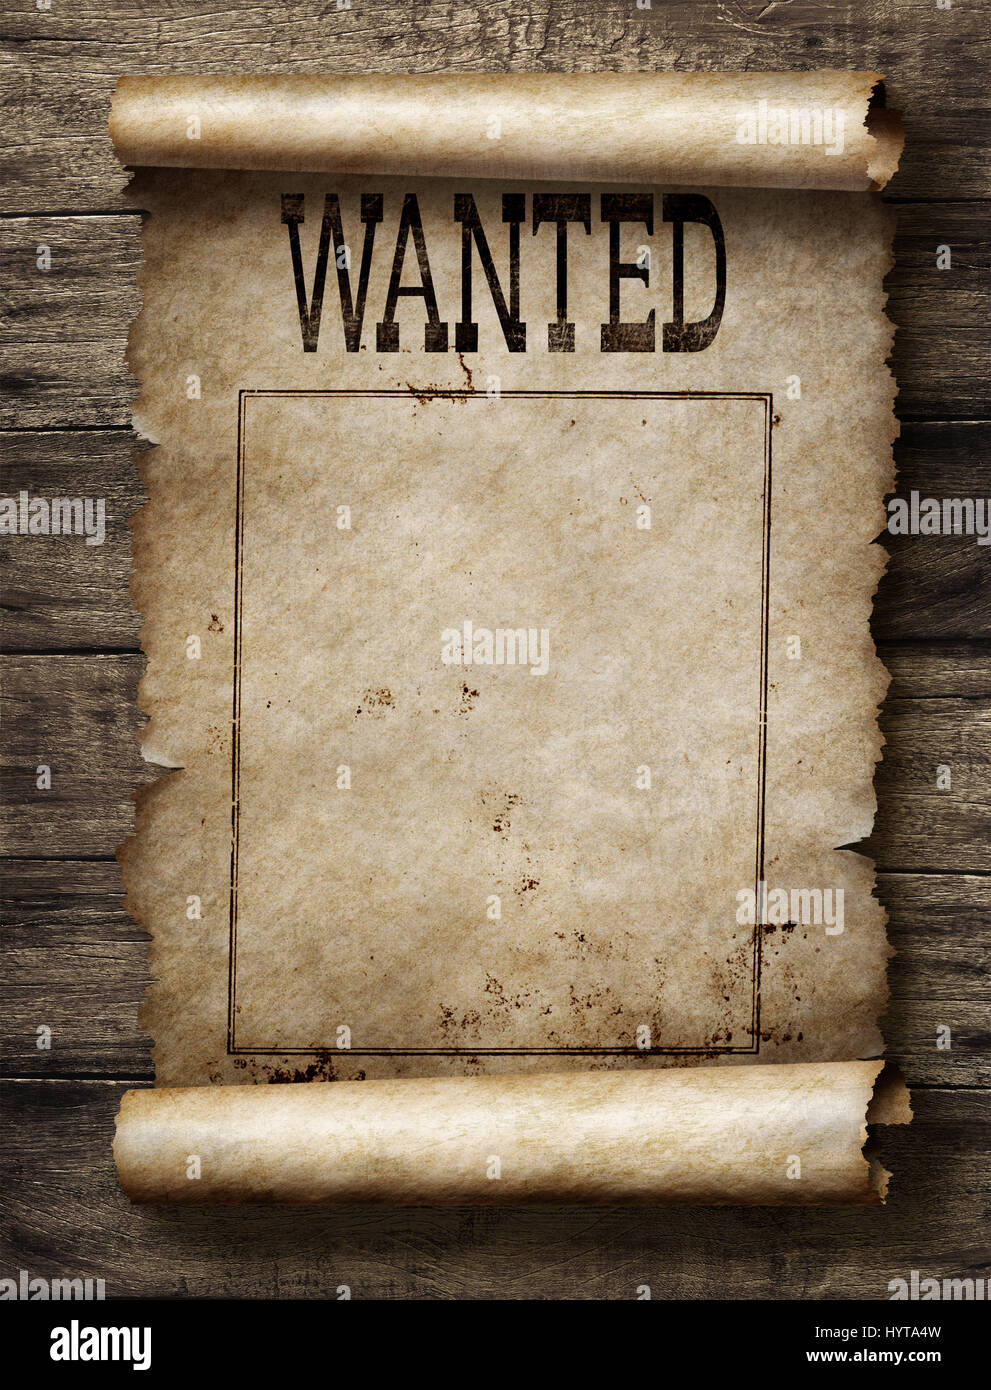 Wanted for reward poster - Stock Image